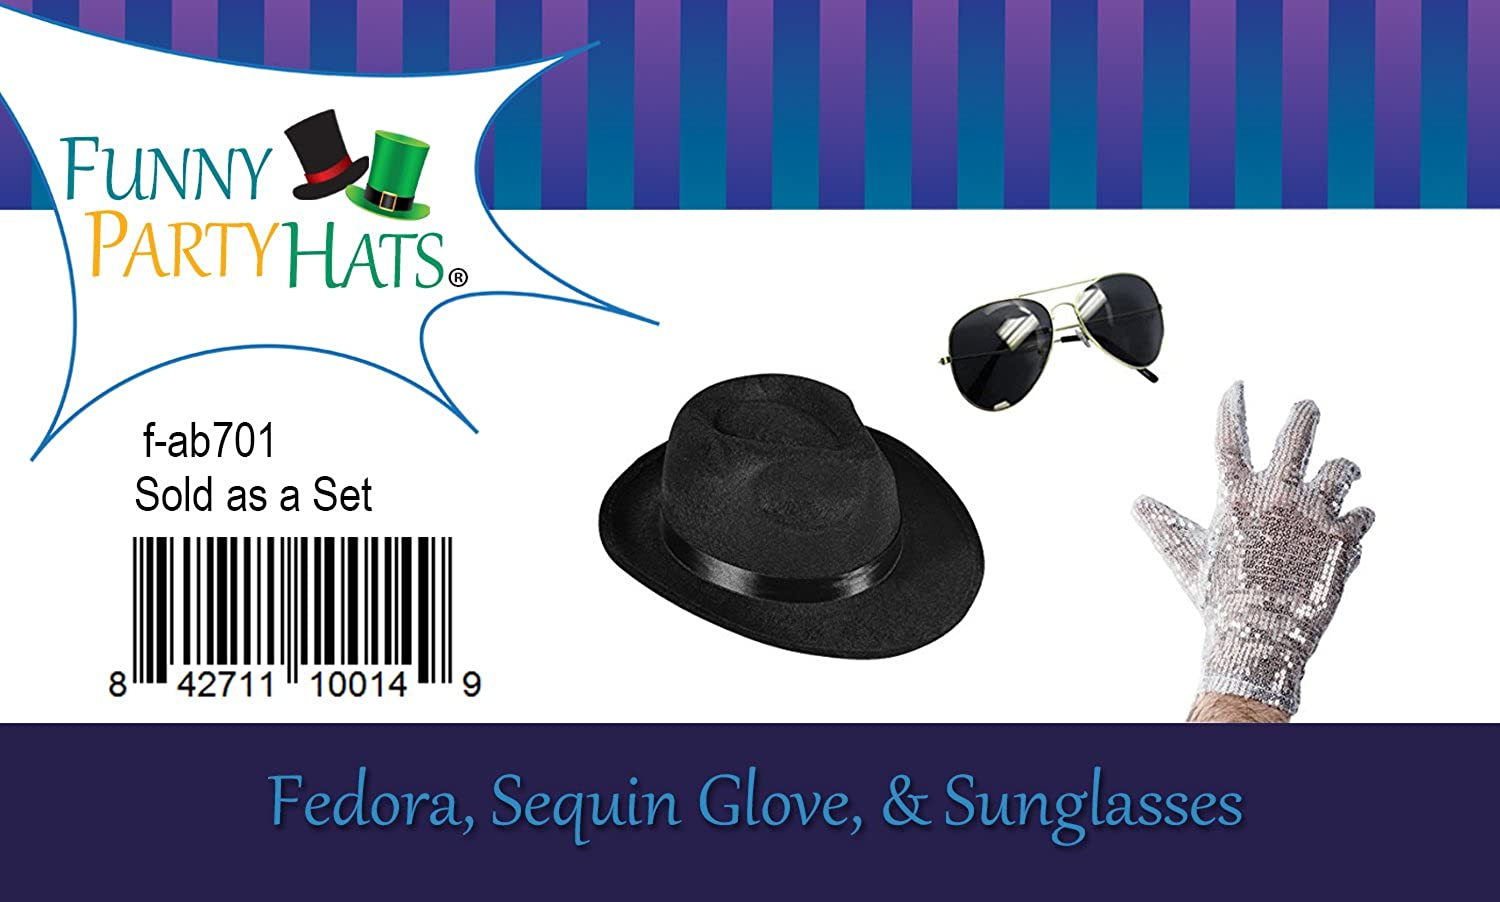 56558c83633c8 Amazon.com  Funny Party Hats Set of 3 - Fedora Hat Sequin Glove And  Sunglasses by (Fedora Hat Sequin Glove And Black Sunglasses)  Kitchen    Dining